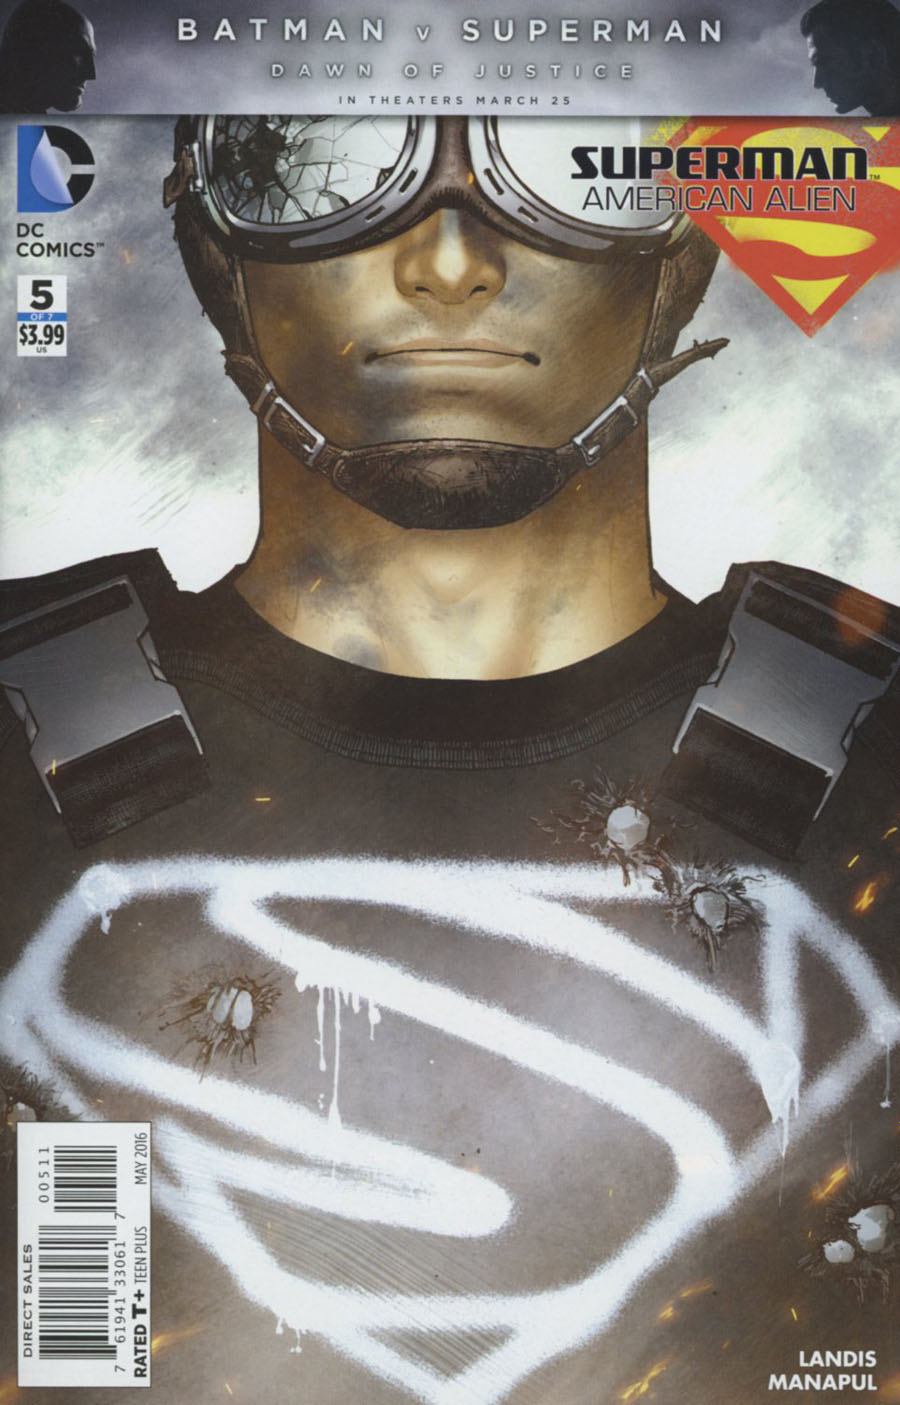 Superman: American Alien #5